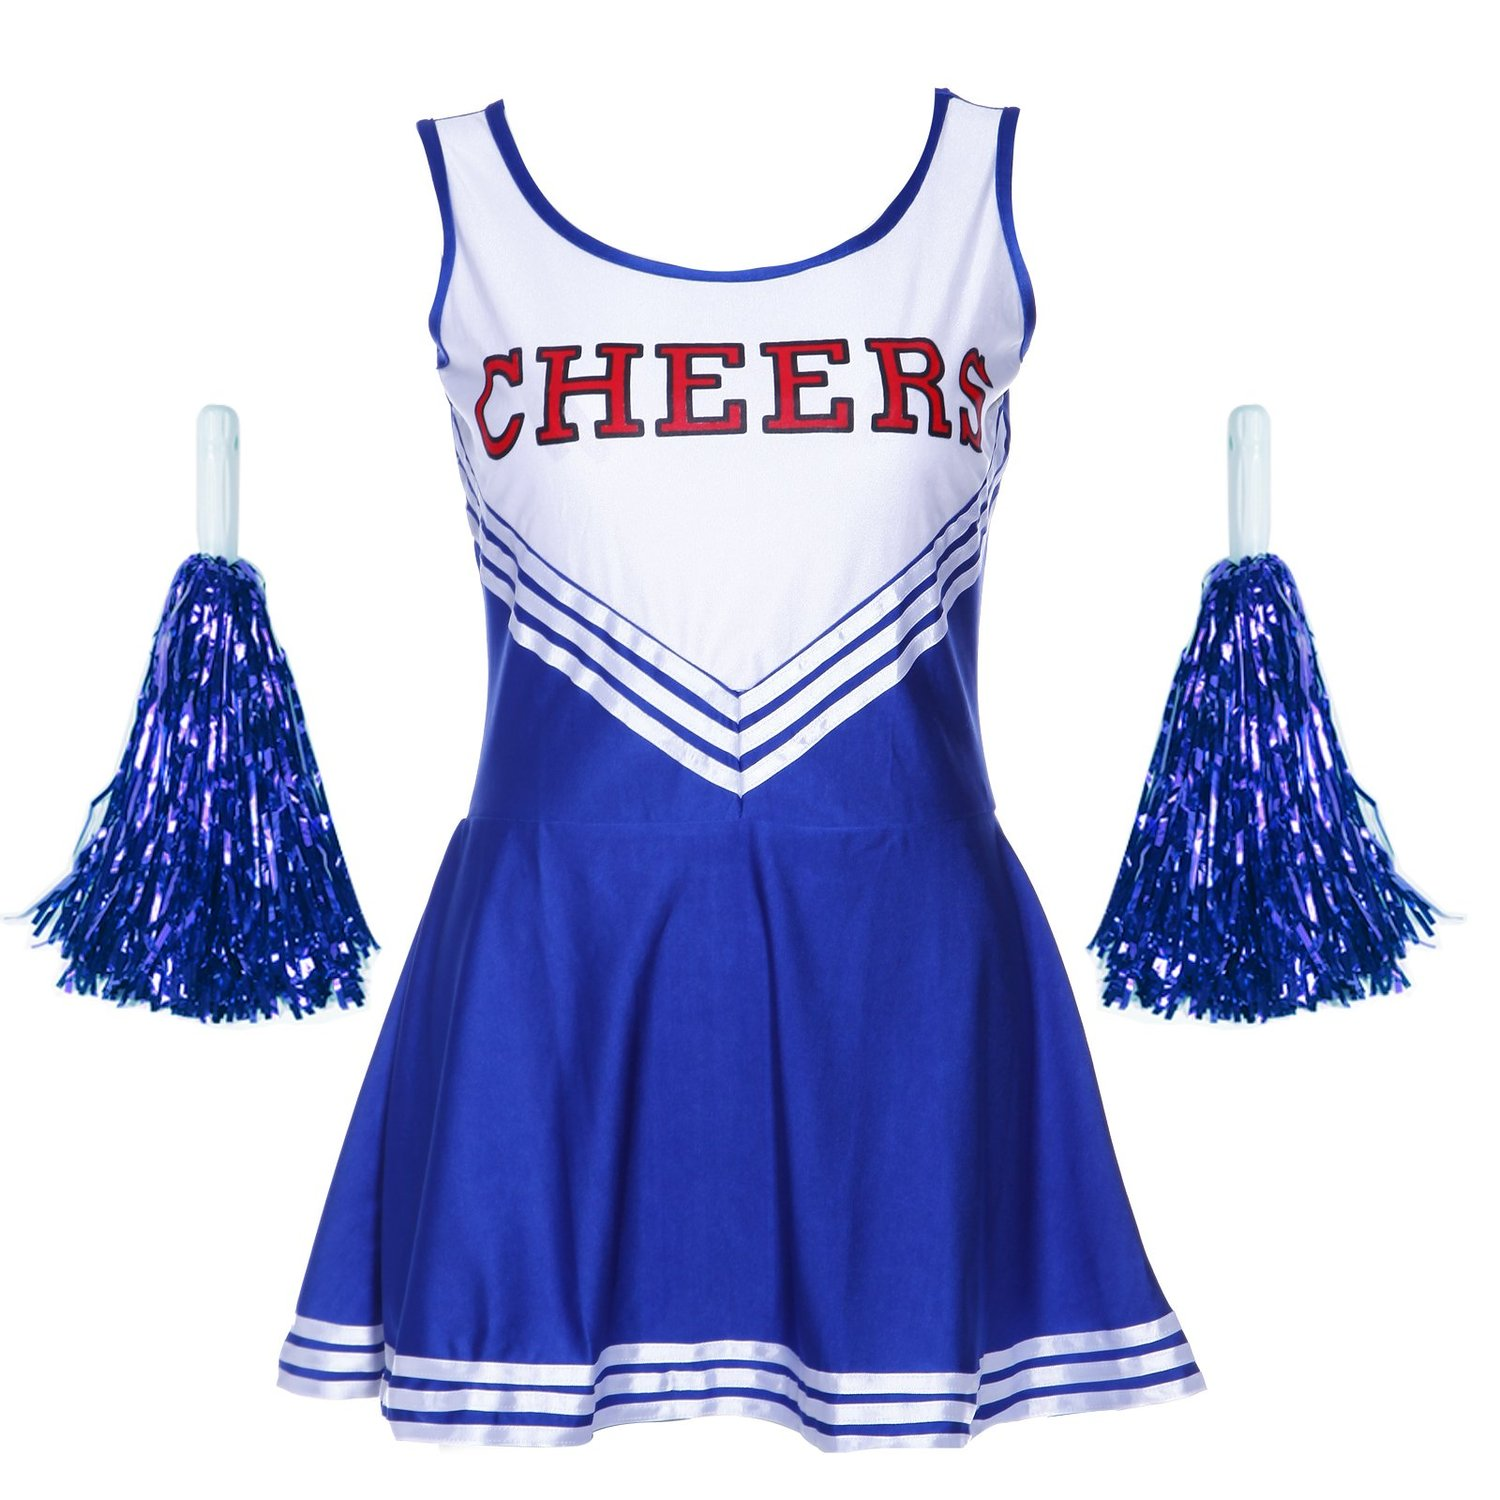 5Set Sale Pom-pom girl tank top dress cheer leader blue suit costume XL (42-44) school football ...